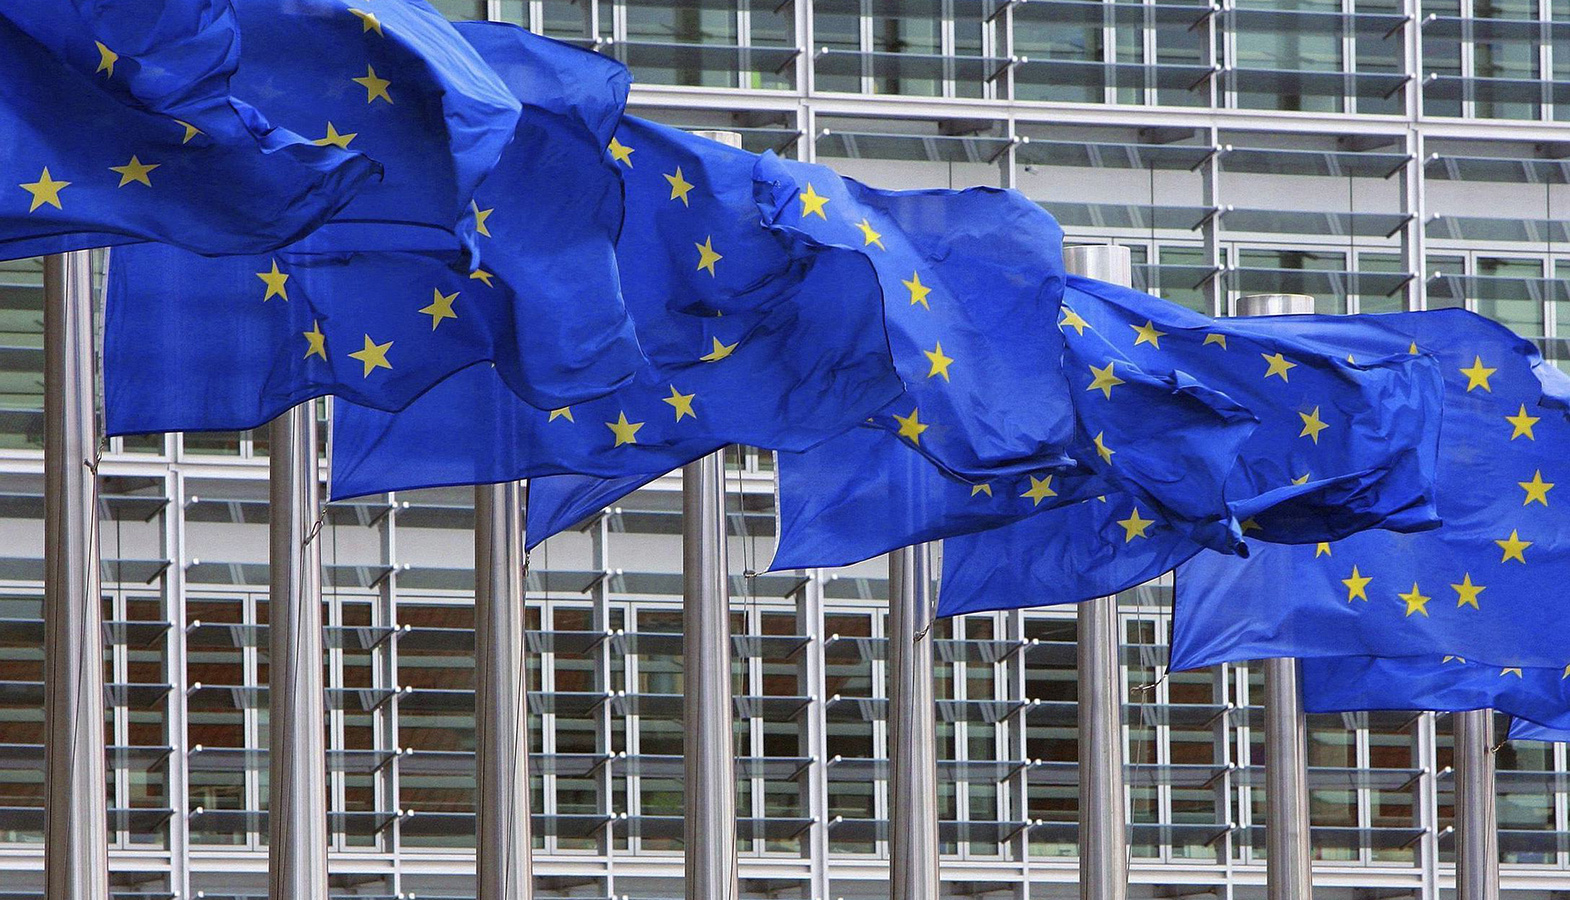 The European Commission Intends To Tighten Control Over Digital Giants